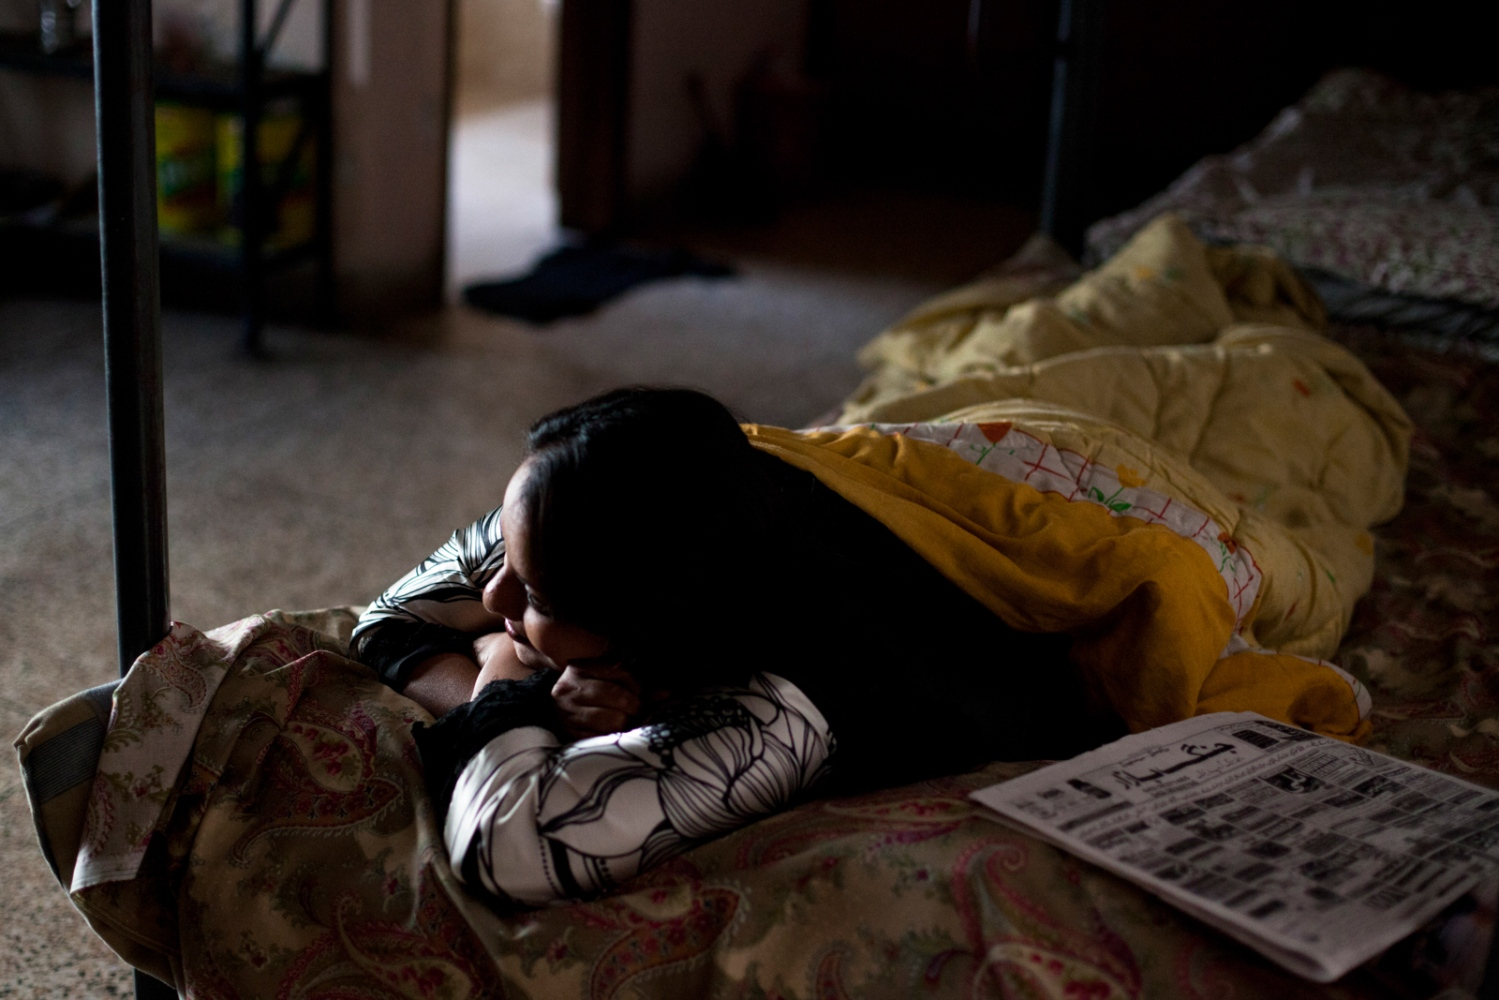 A Pakistani resident rests in a bedroom at the Dastak women's shelter in Lahore on March 4, 2013.